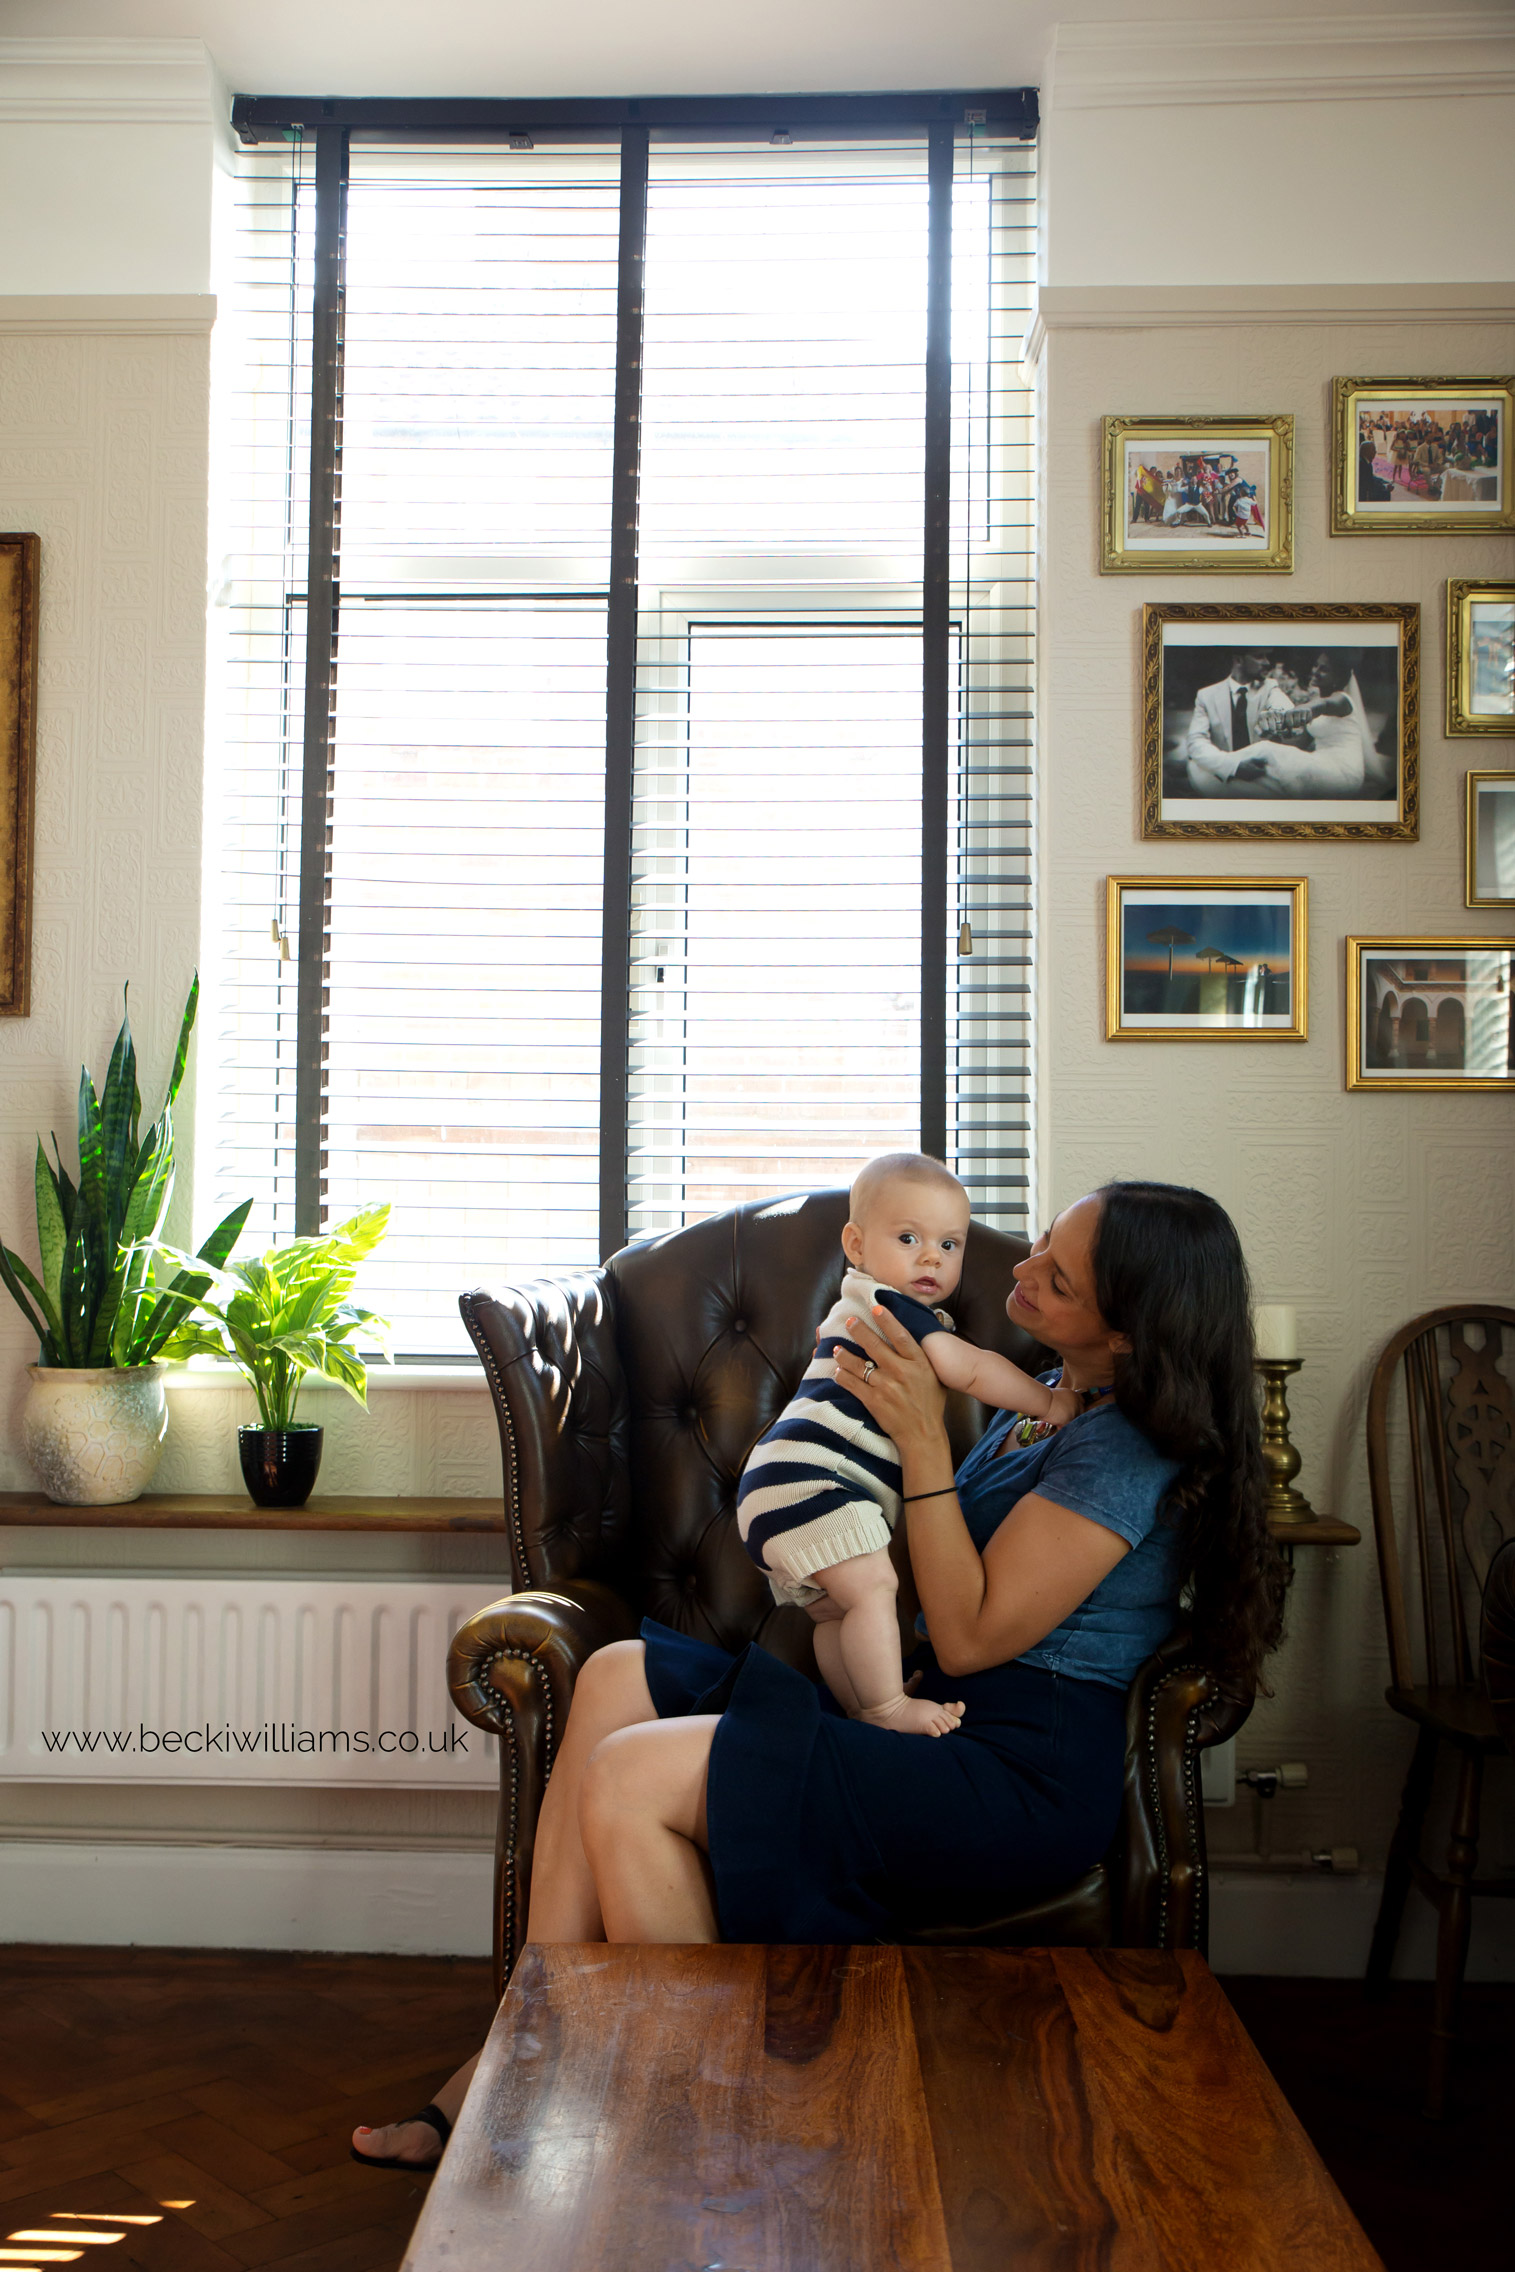 6 month old boy sitting on his mums lap in living room at home for photo shoot